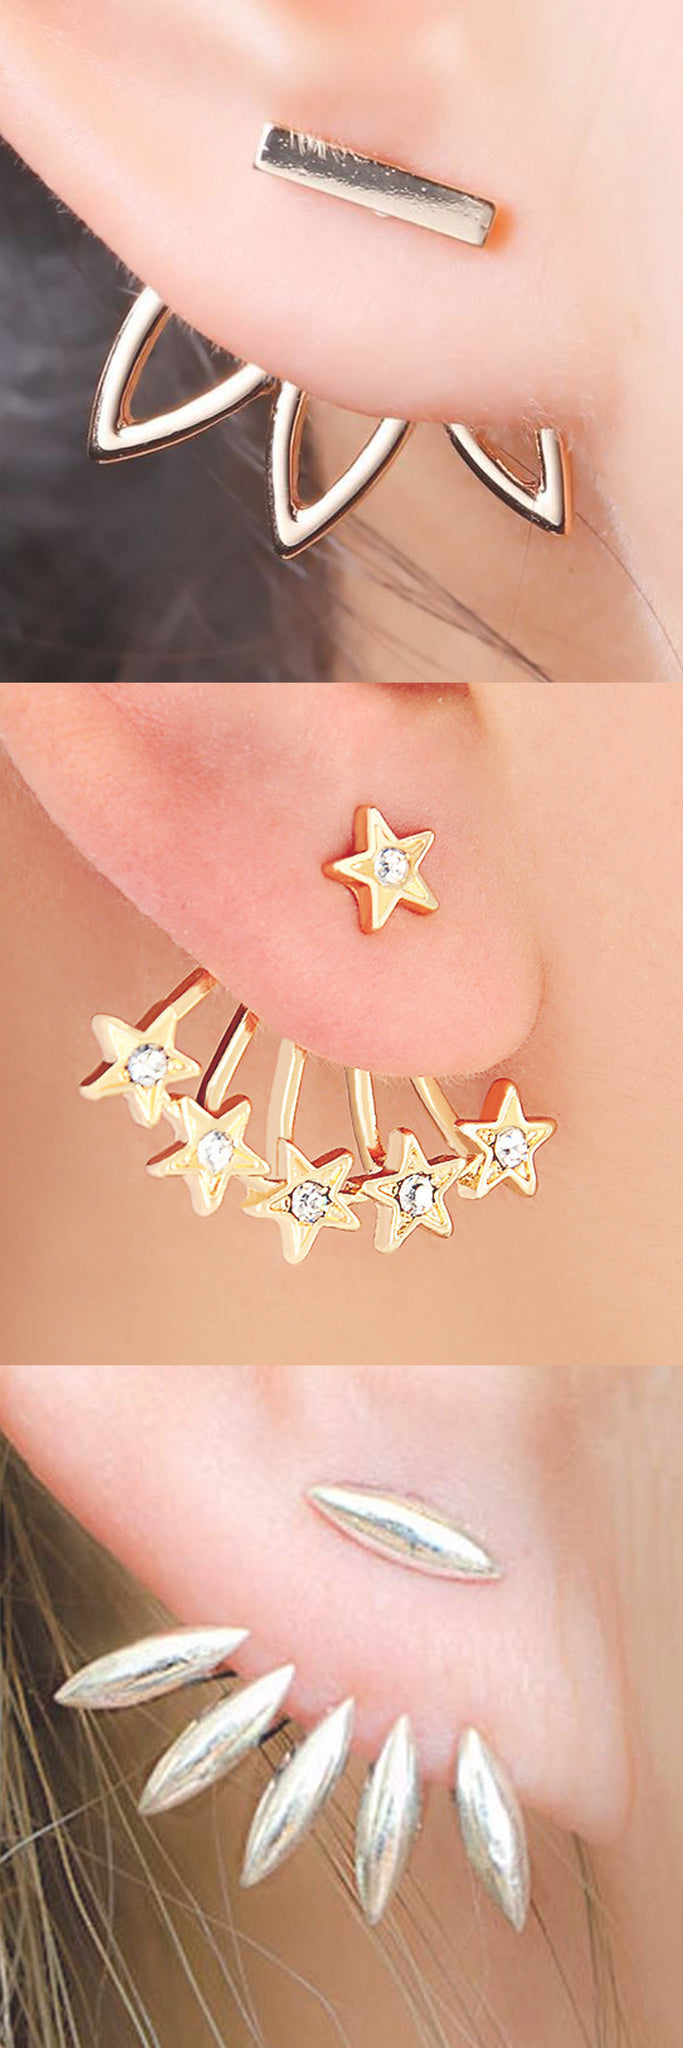 Celebrity Ear Piercing Ideas that are SOO Unique - Ear Jacket Earrings at MyBodiArt.com